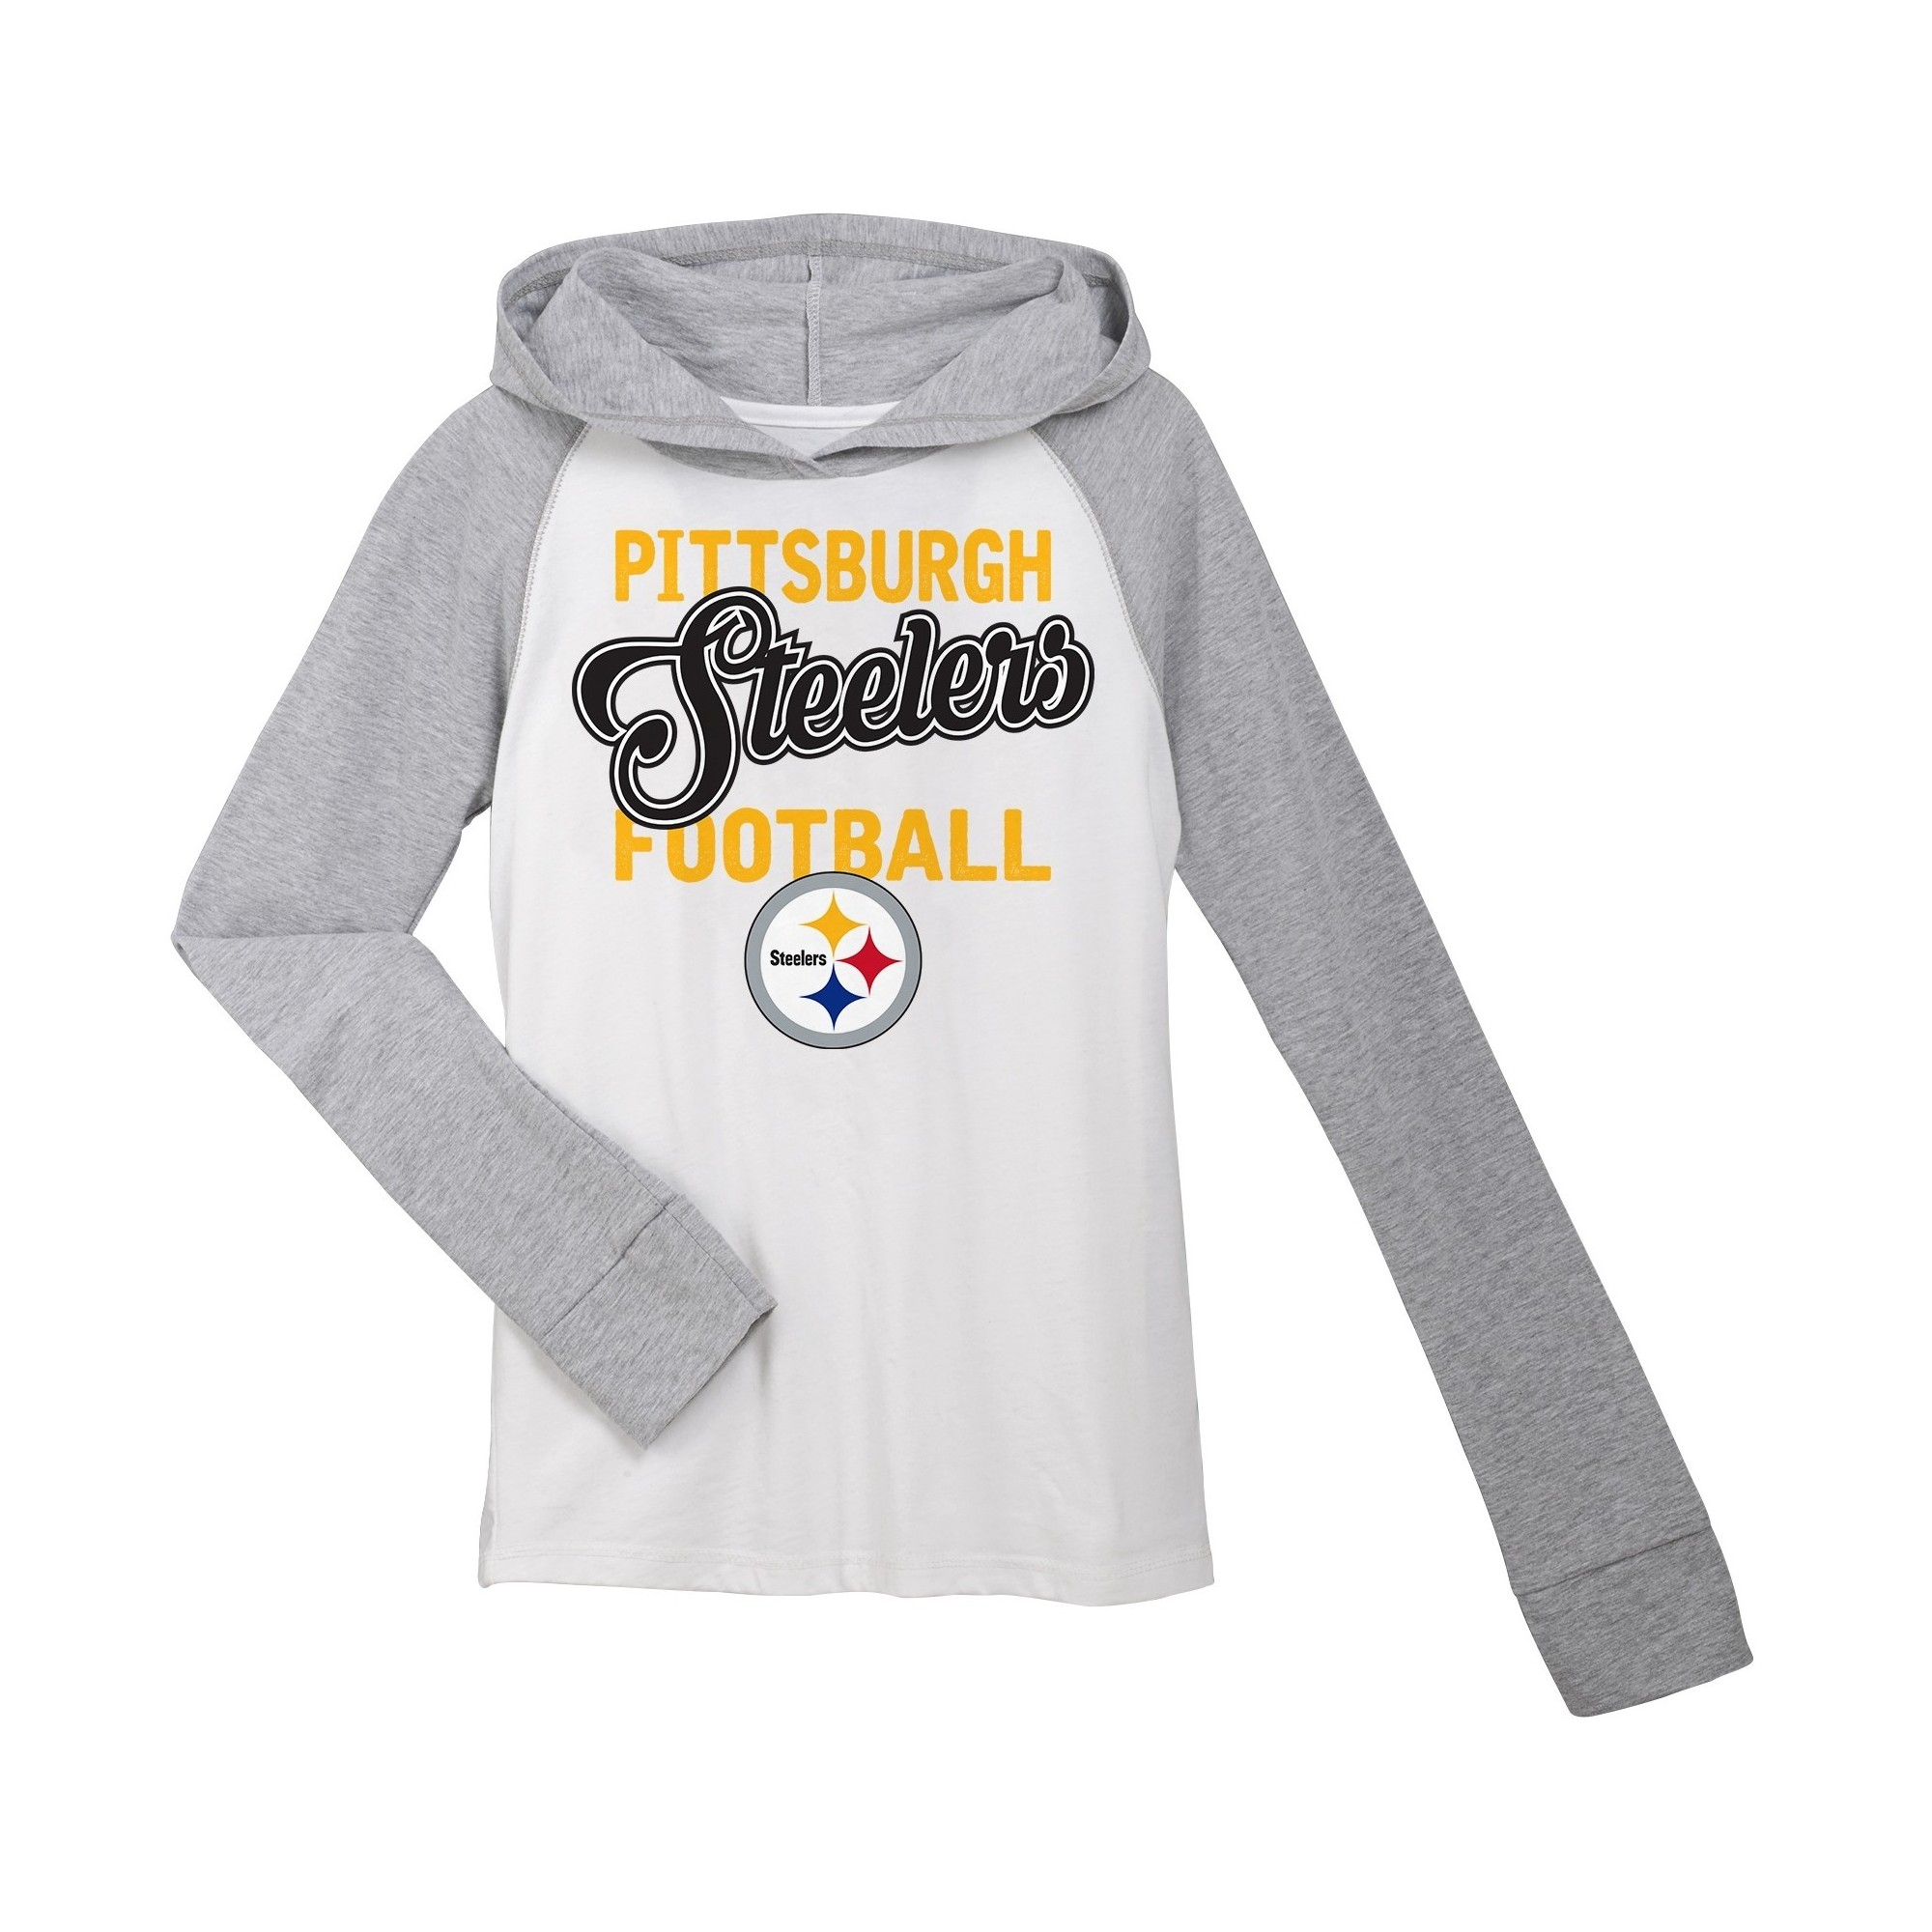 newest collection 4b6bf 42564 Pittsburgh Steelers Sweatshirt S, Girl's, Size: Small, White ...